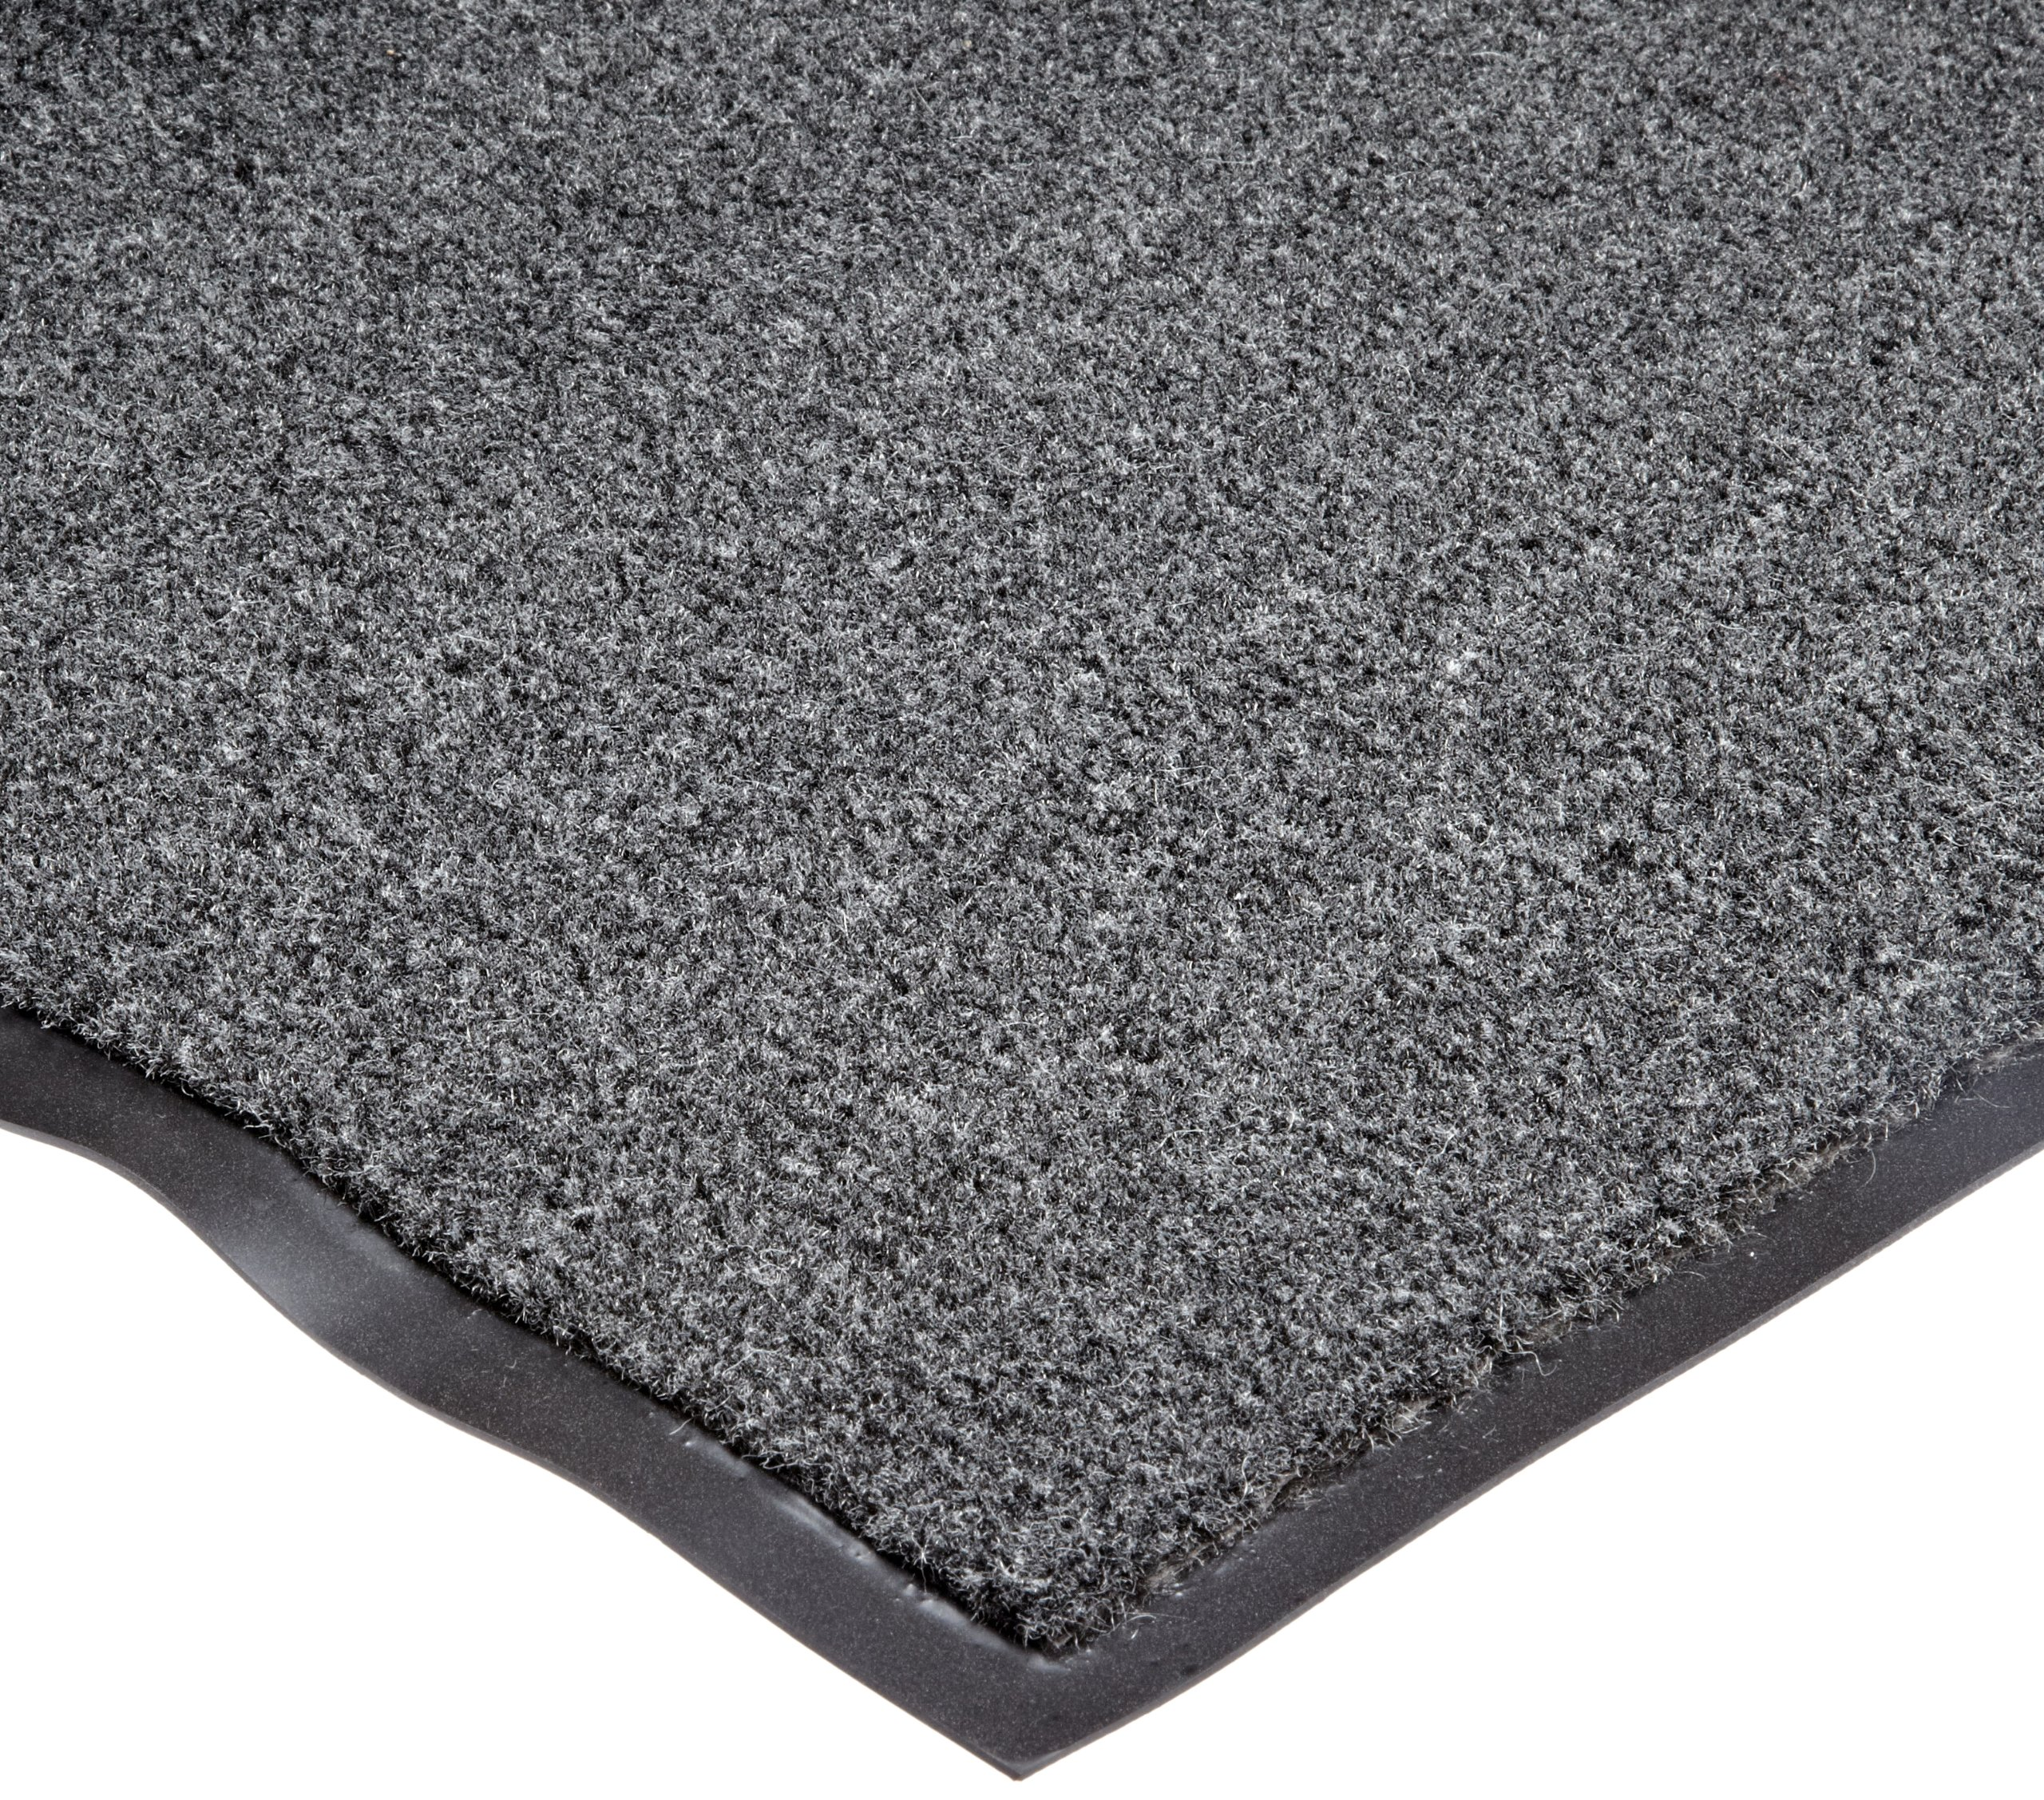 NoTrax T37 Fiber Atlantic Olefin Entrance Carpet Mat, for Wet and Dry Areas, 2' Width x 3' Length x 3/8'' Thickness, Gun Metal